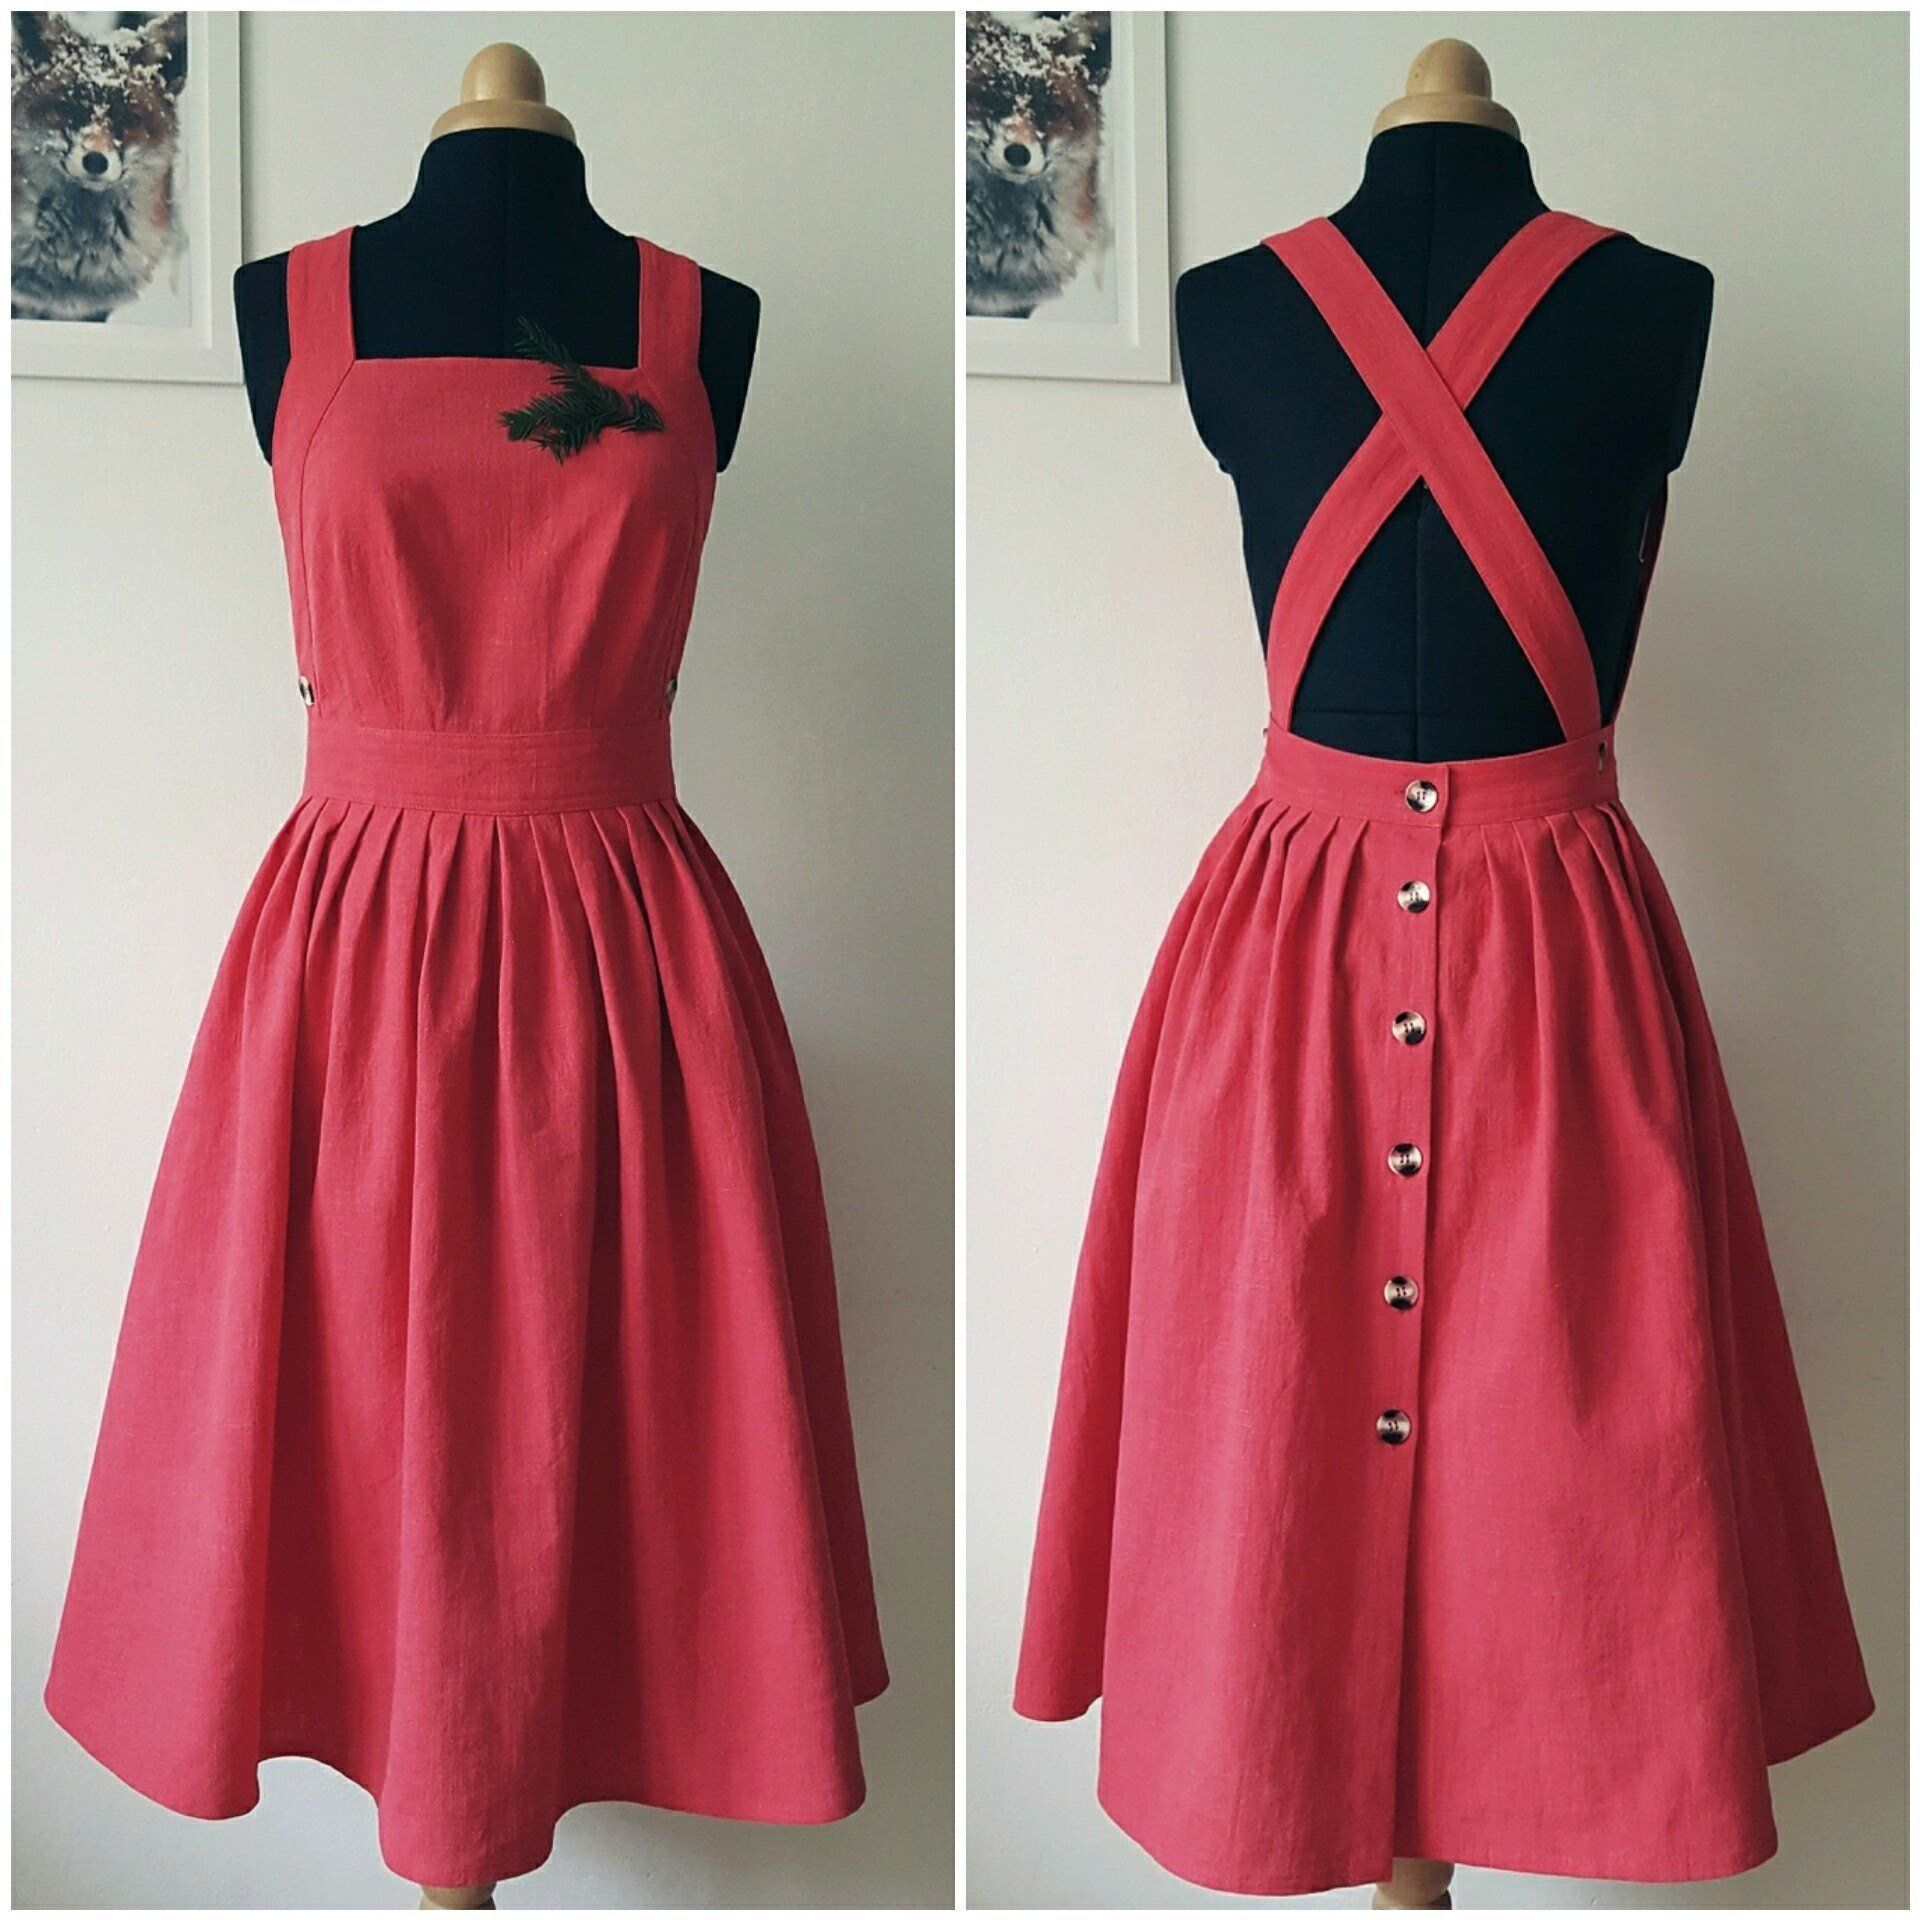 my new linen pinafore dress with full skirt. available in 27